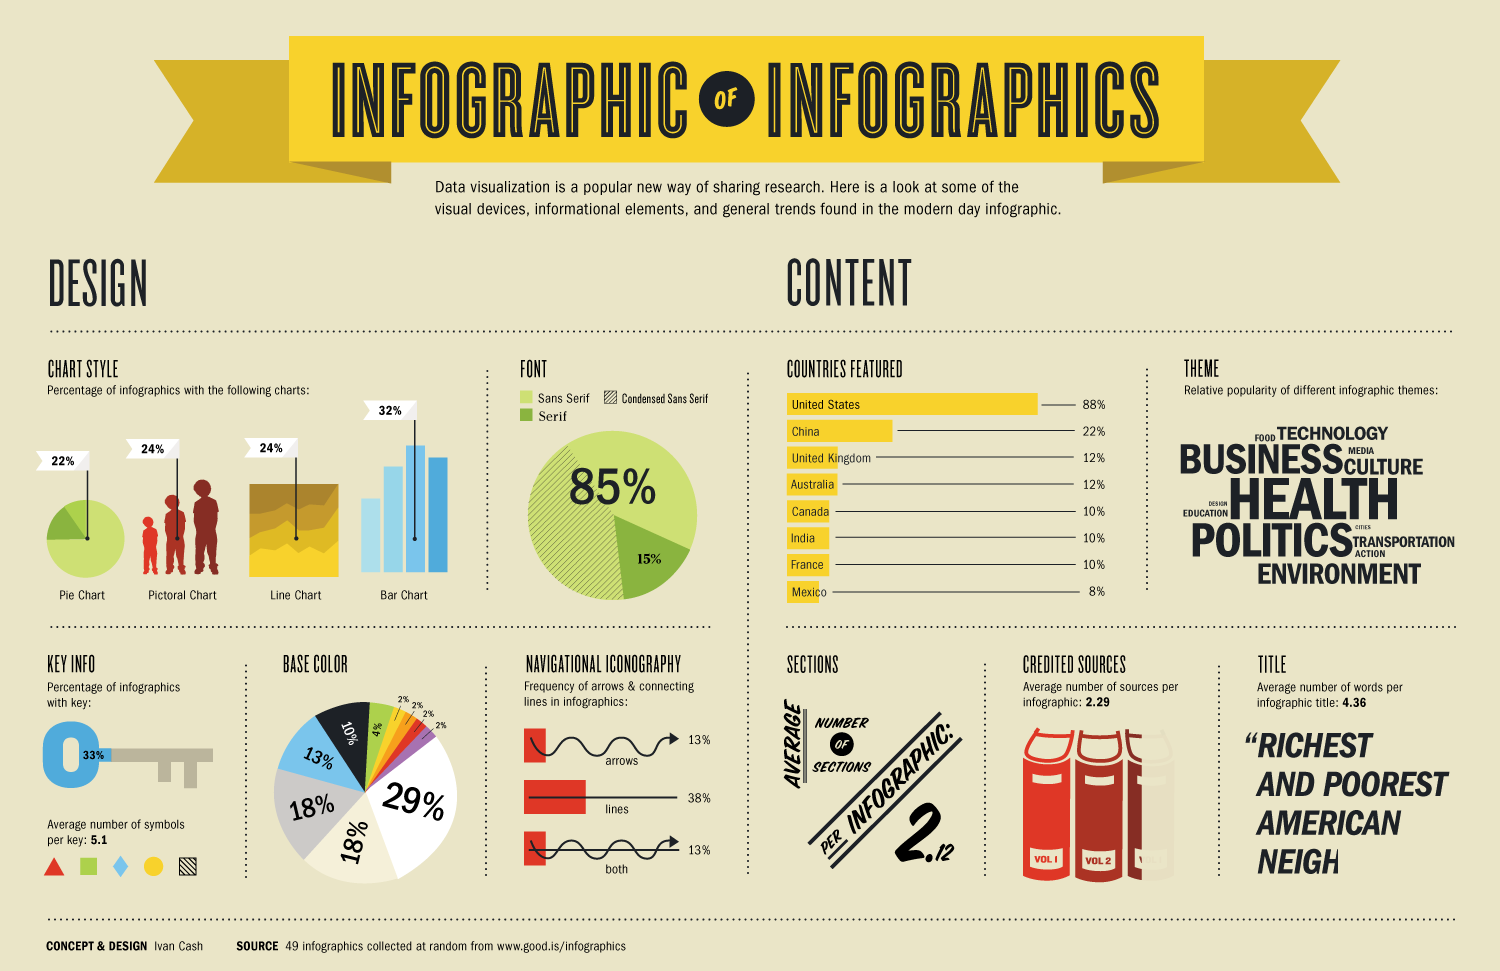 Designing Interesting Infographics - Tips and Tricks | inspirationfeed.com